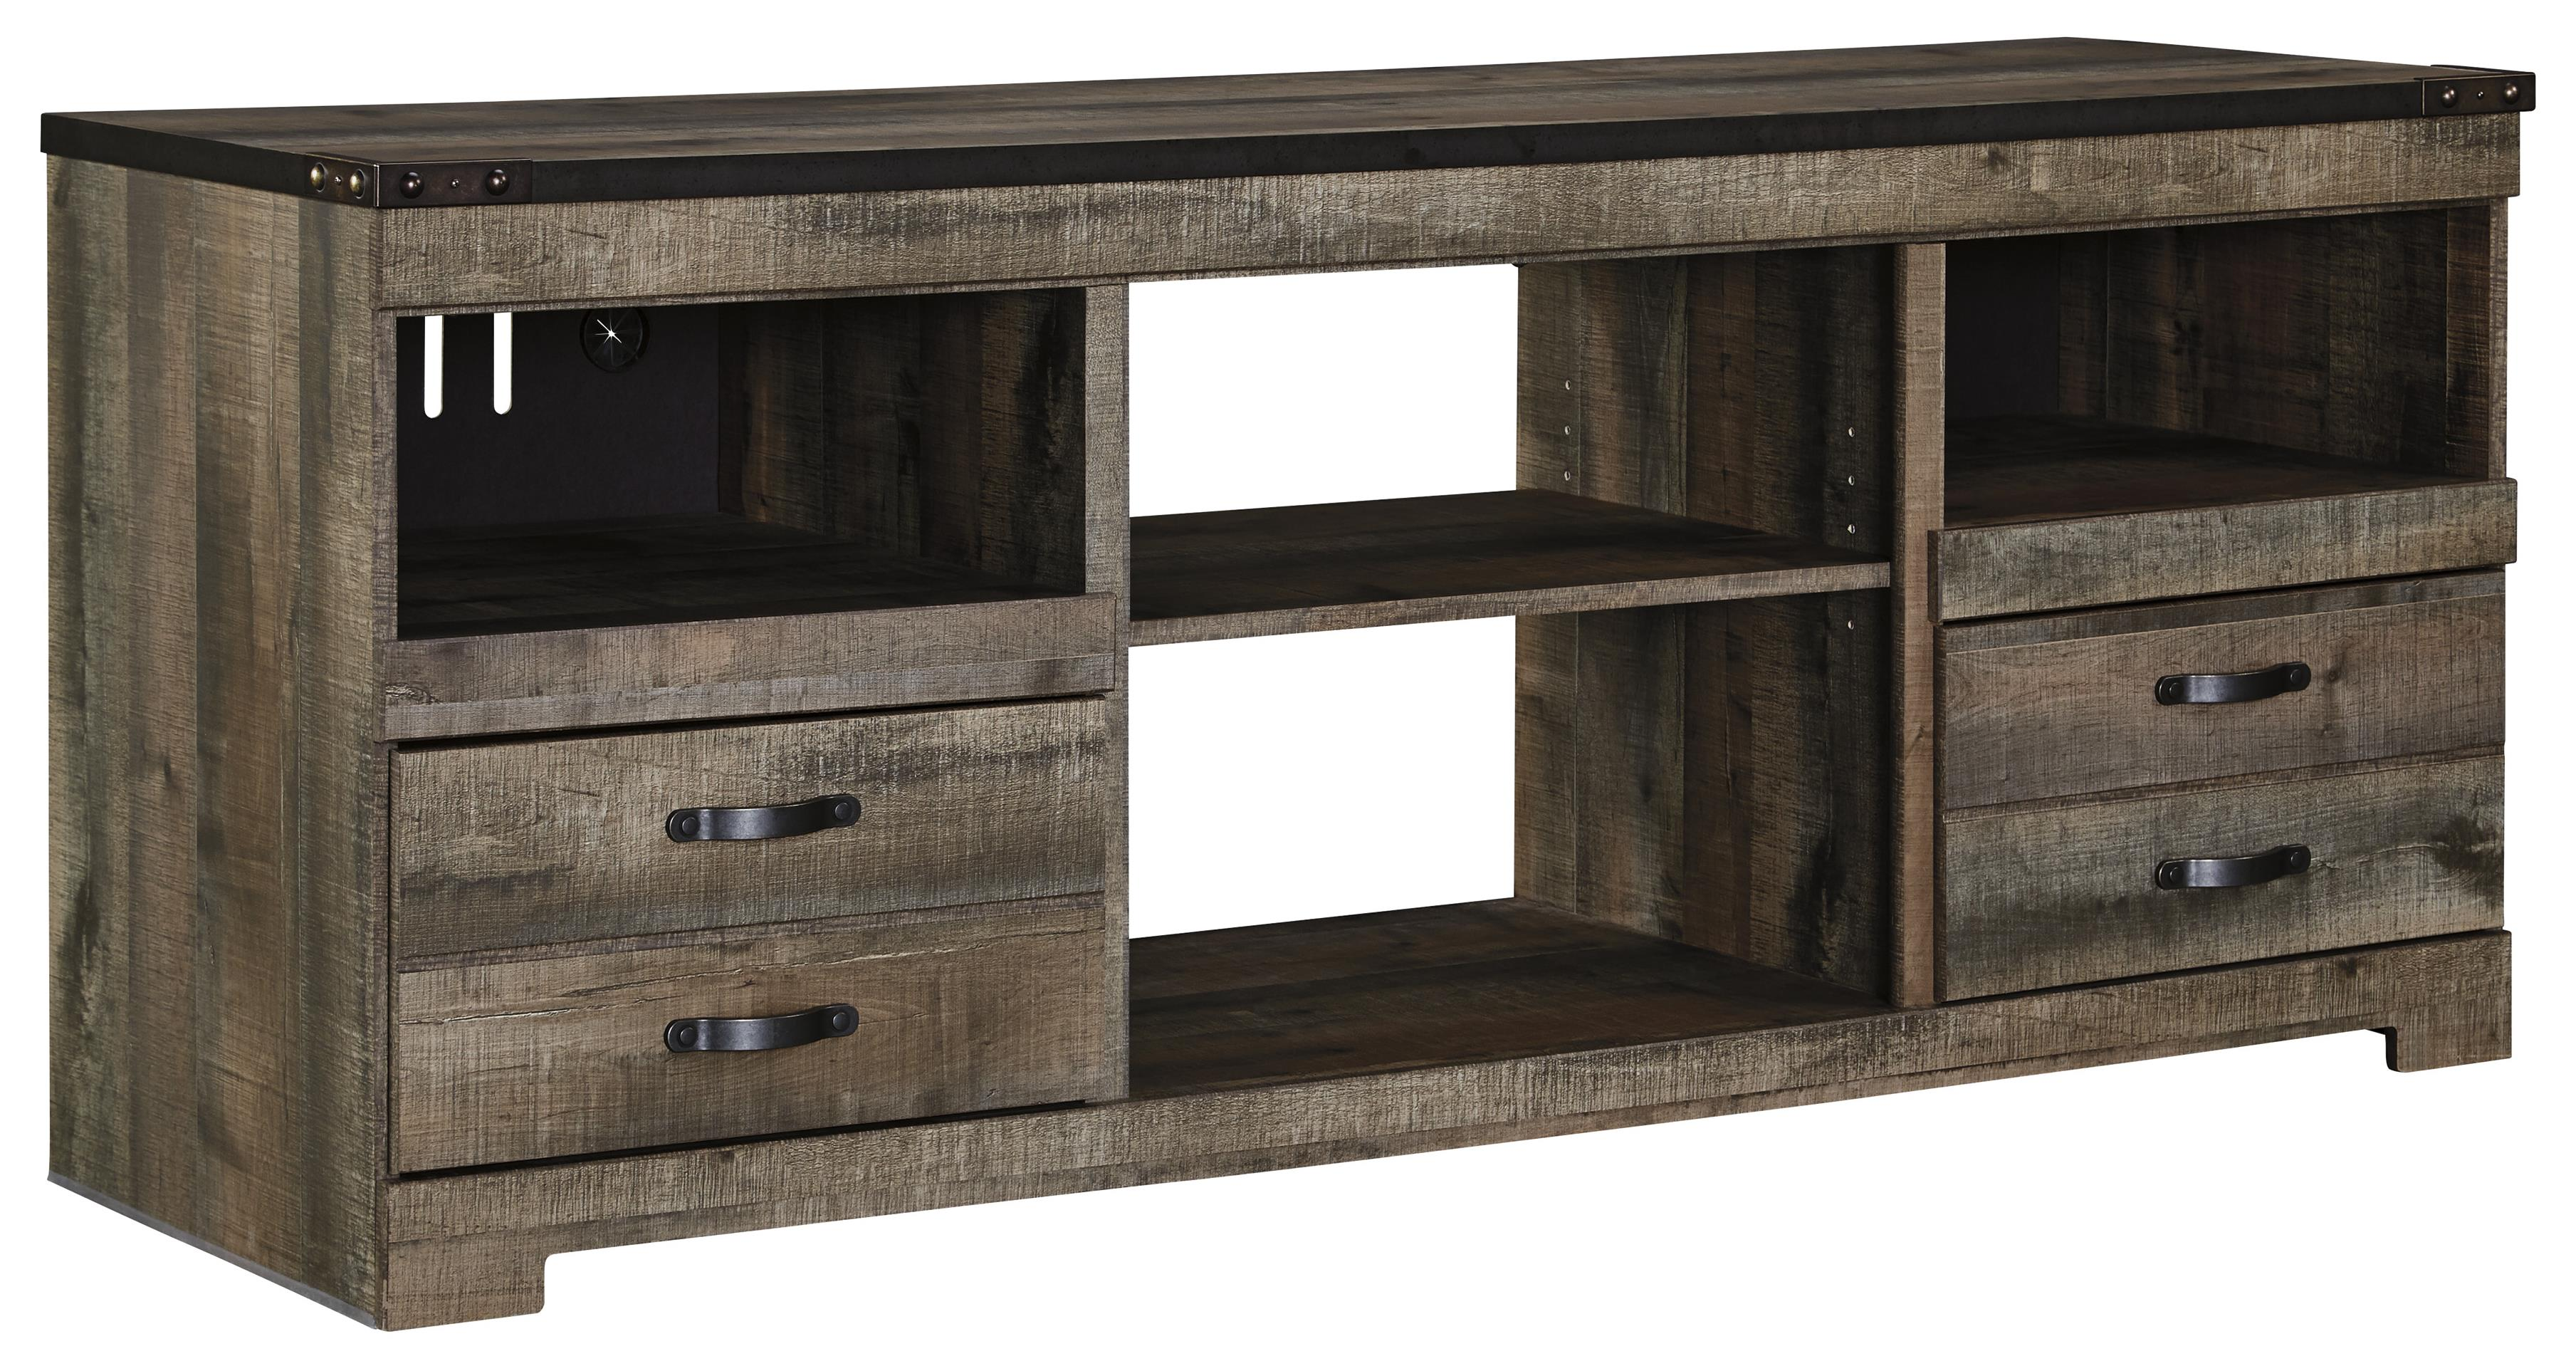 Signature Design By Ashley Trinell W446 68 Rustic Large TV